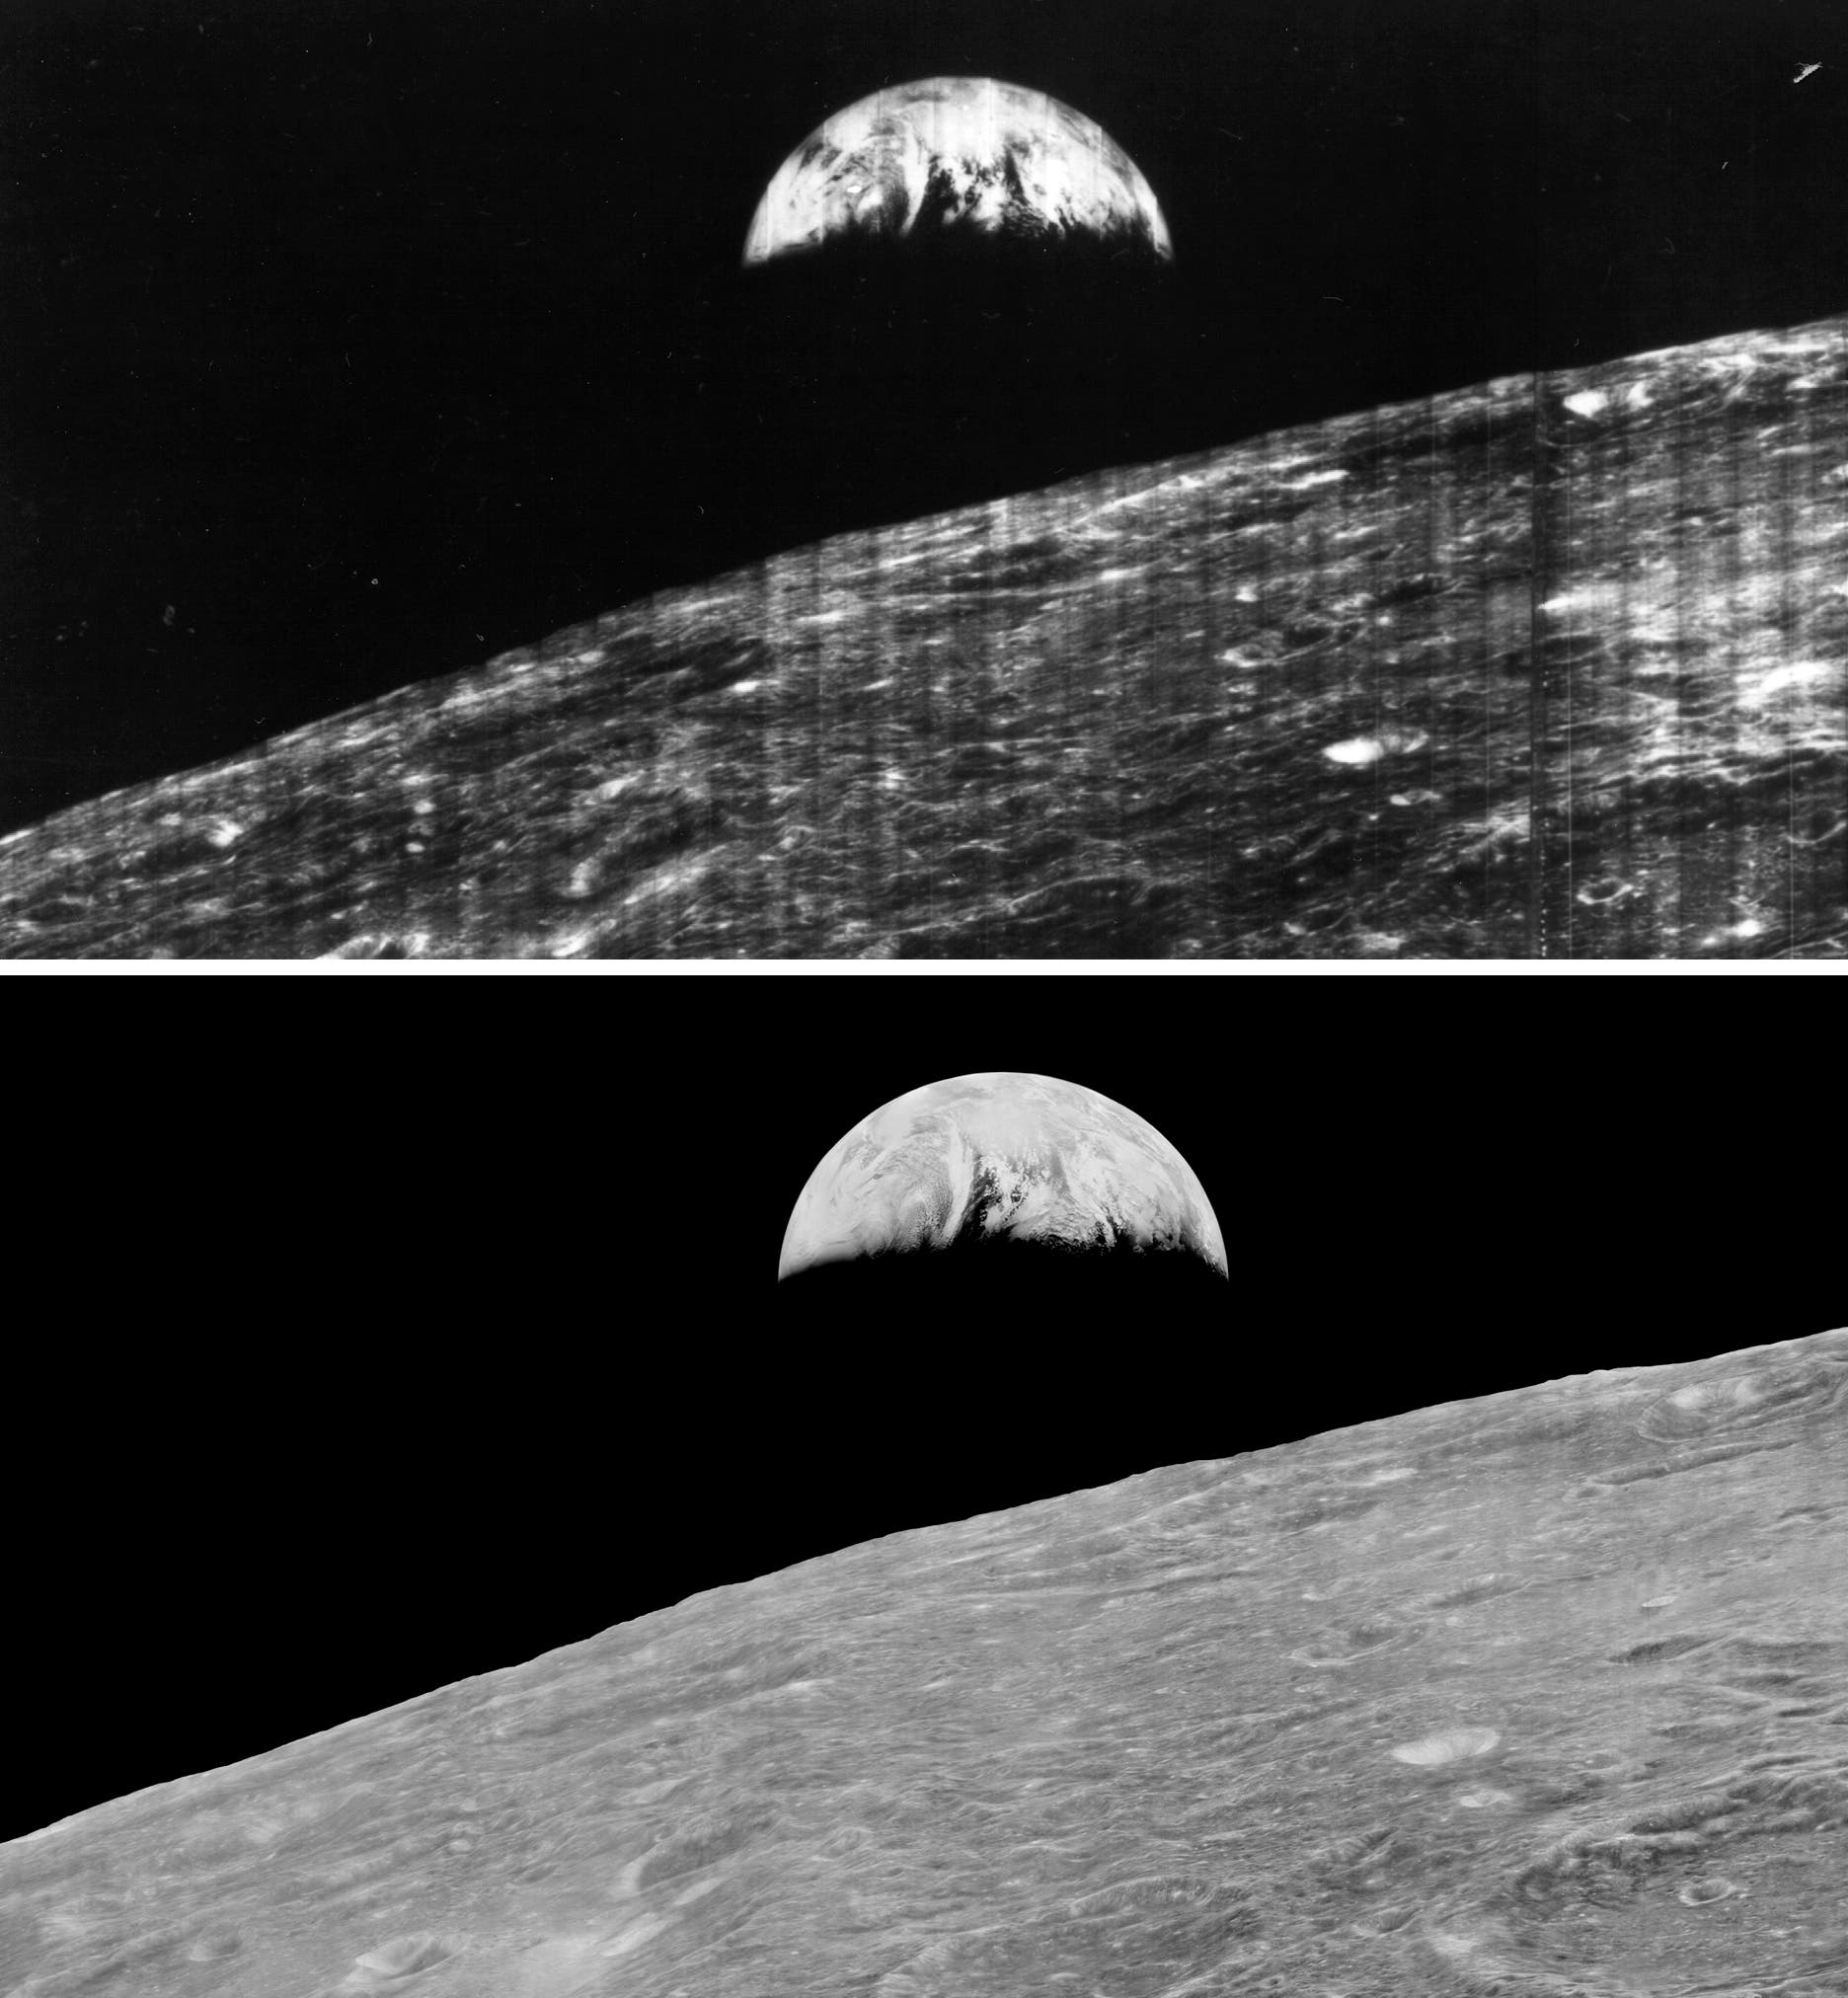 Techno-Archaeologists Recover and Digitalize Long-Lost Lunar Orbiter Photos of the Moon